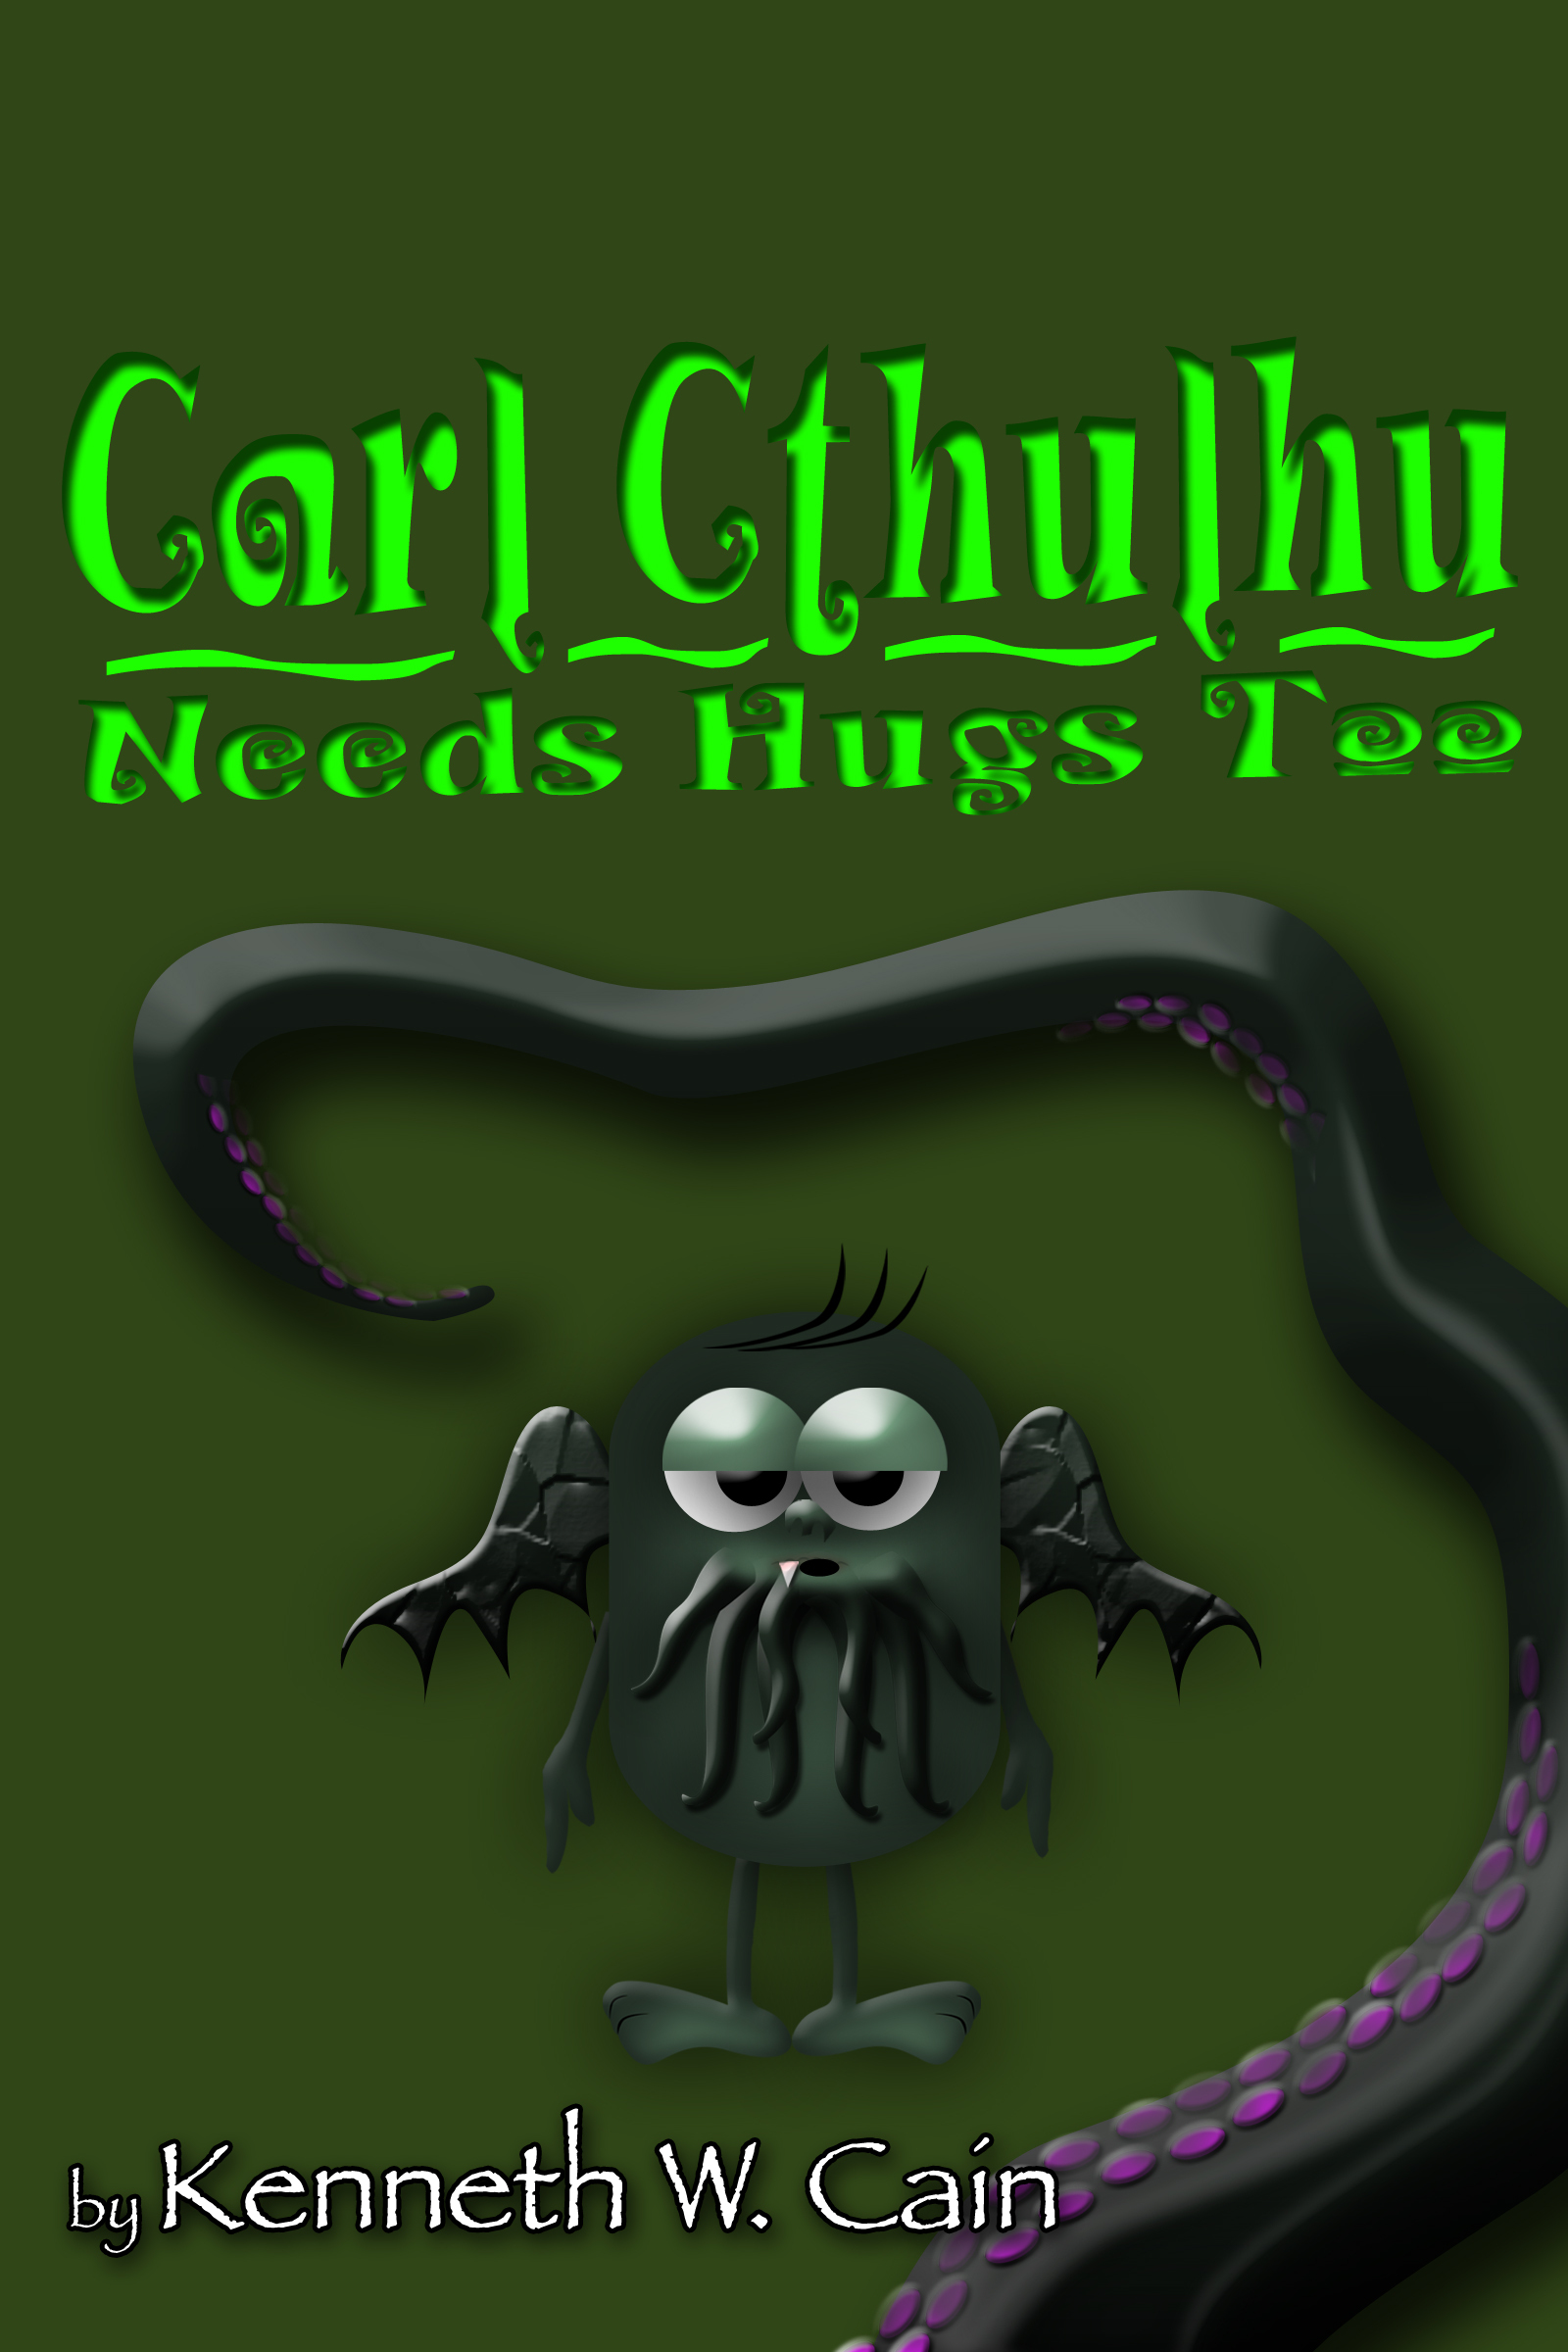 Carl Cthulhu Needs Hugs Too